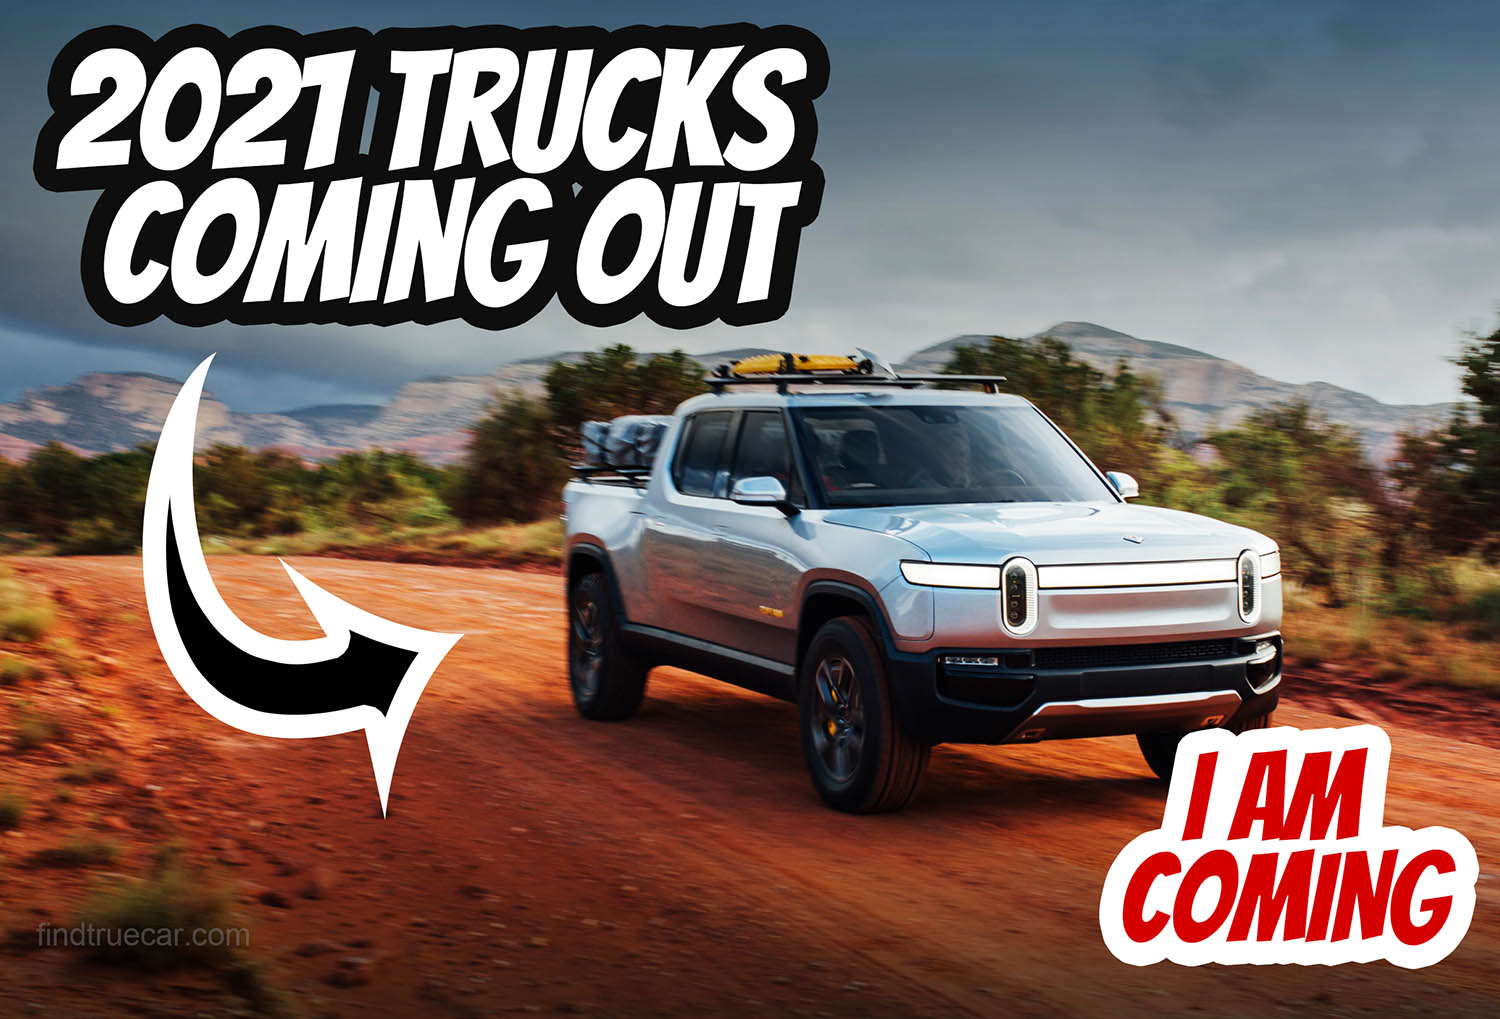 2021 Trucks Worth waiting for